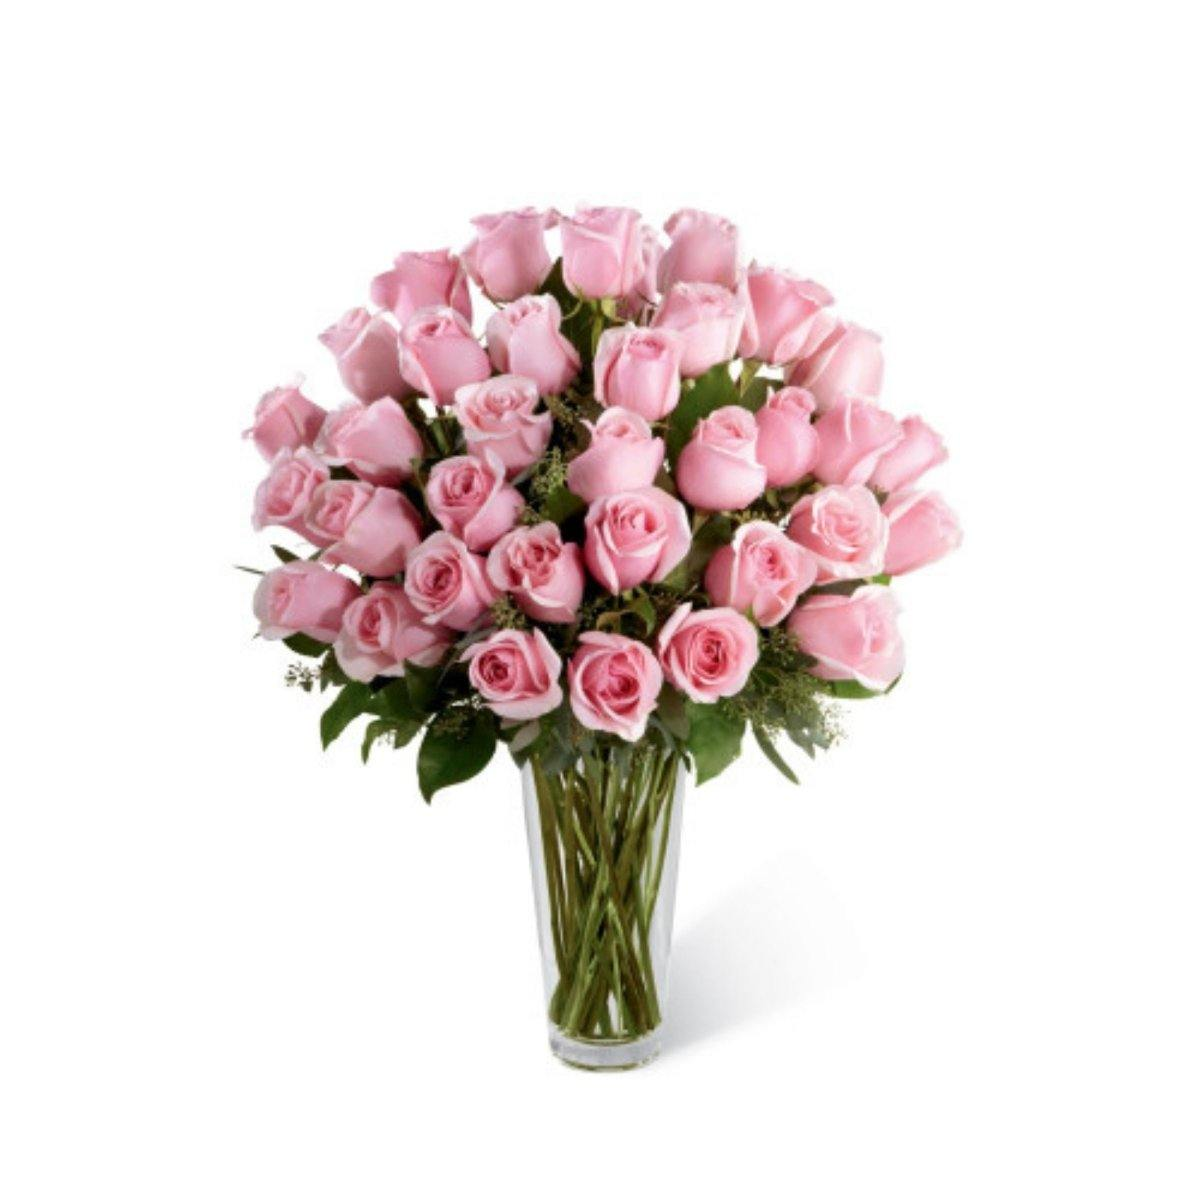 The FTD® Pink Rose Bouquet - Exquisite - Shalimar Flower Shop